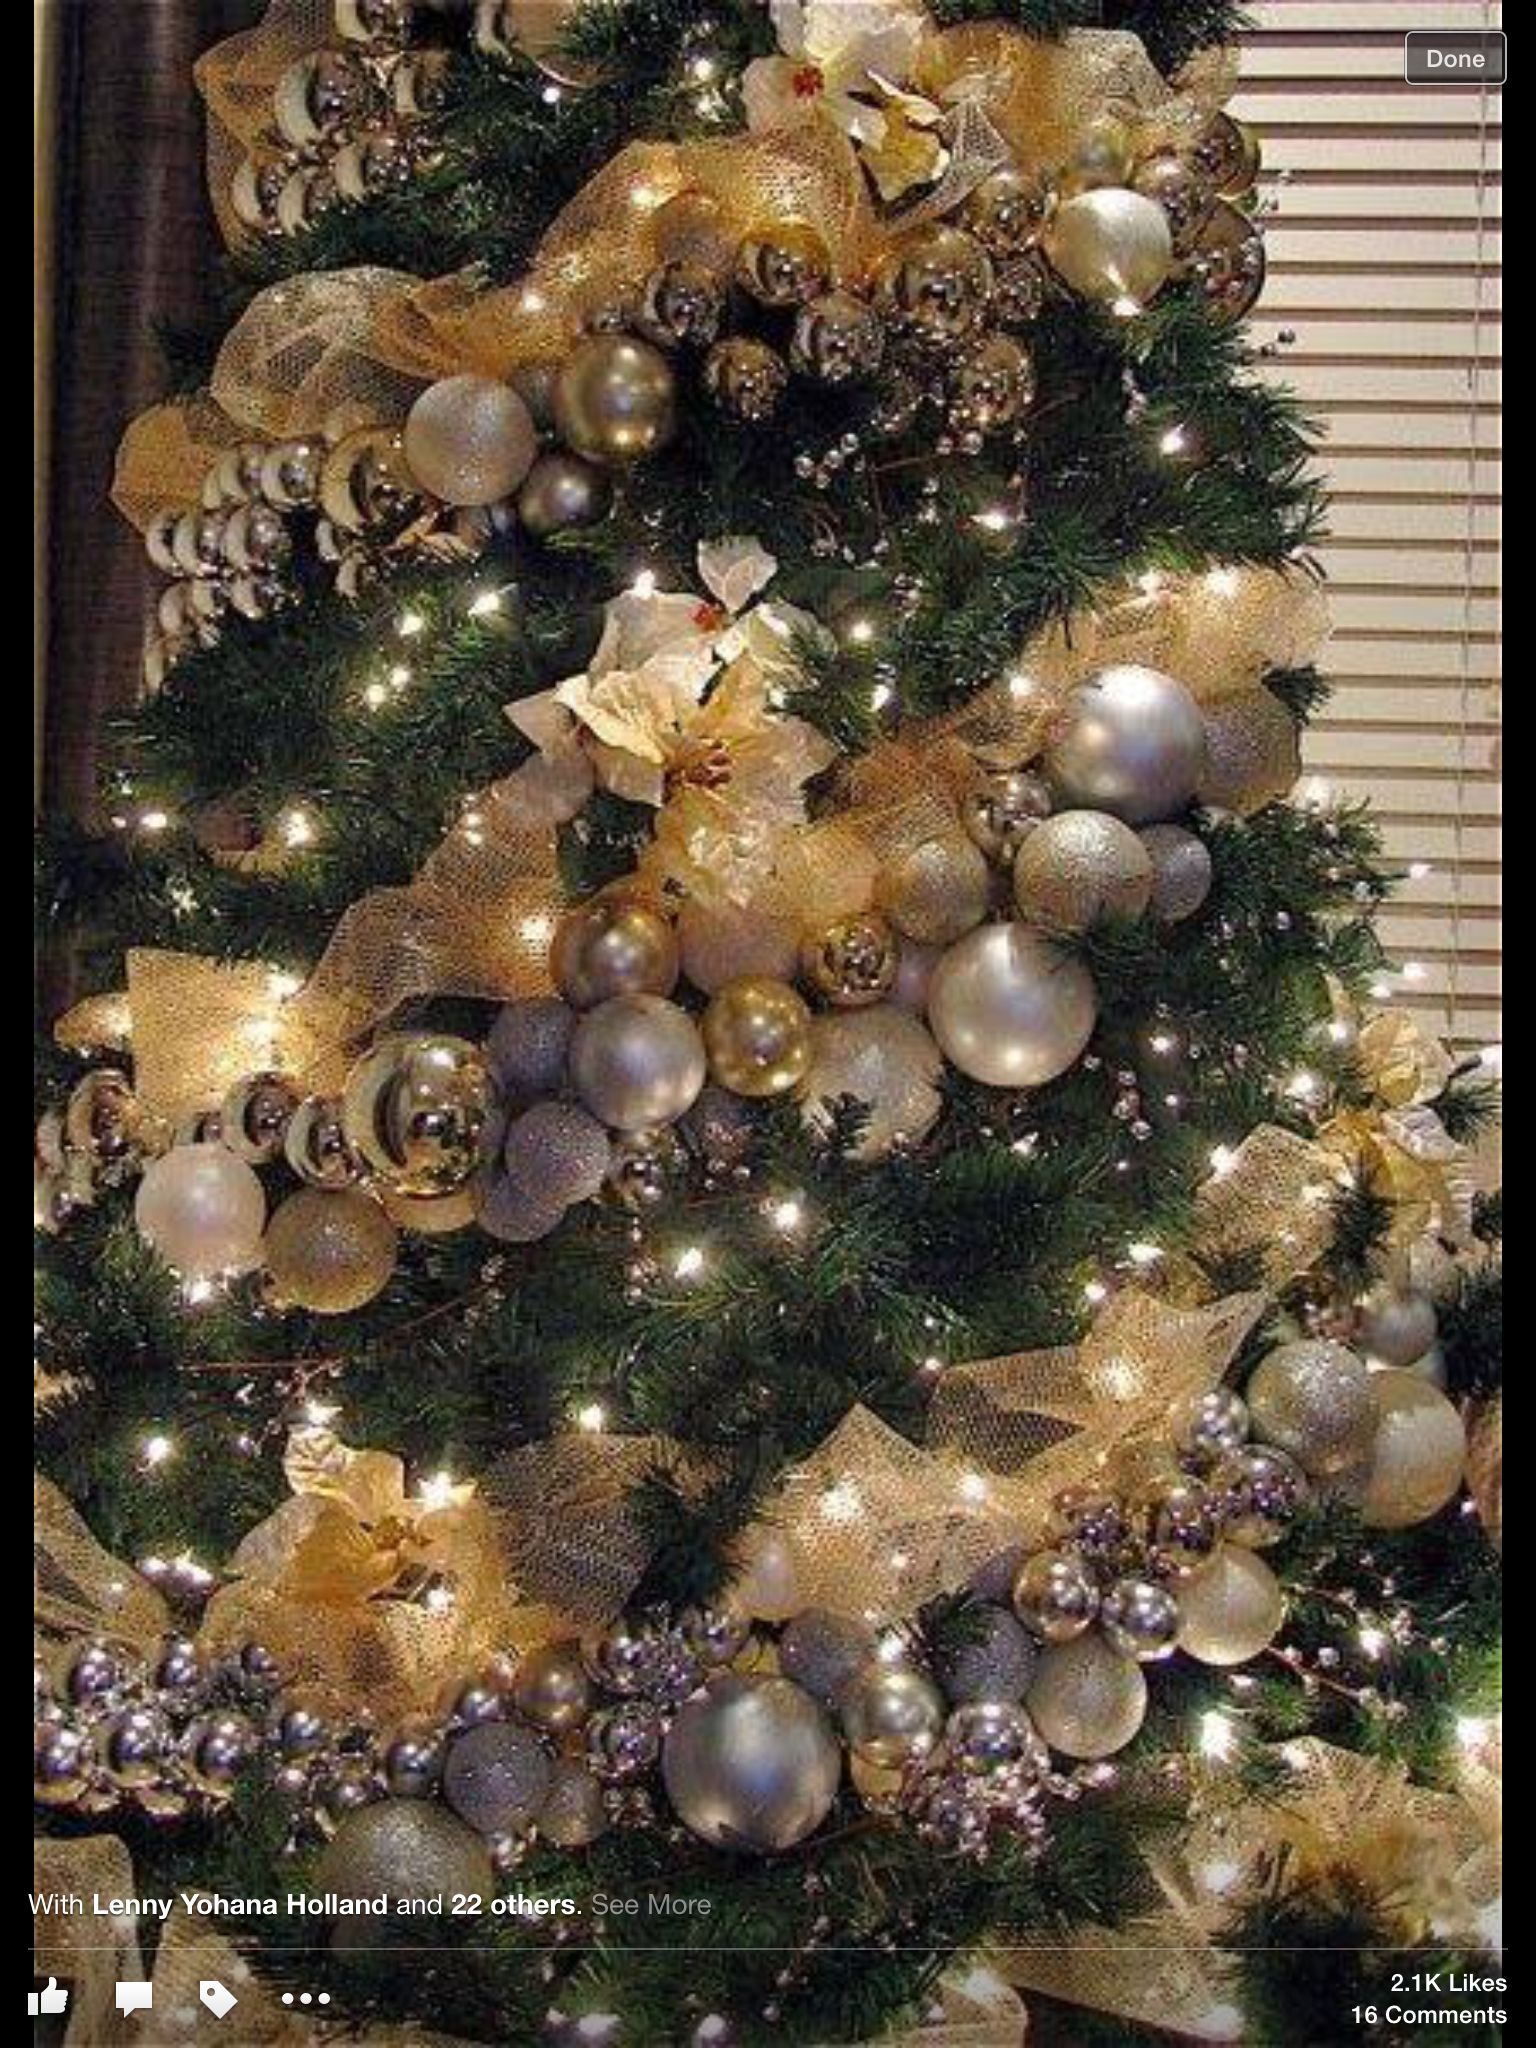 Q. Garland On Christmas TreeBest Christmas Tree DecorationsGold ...